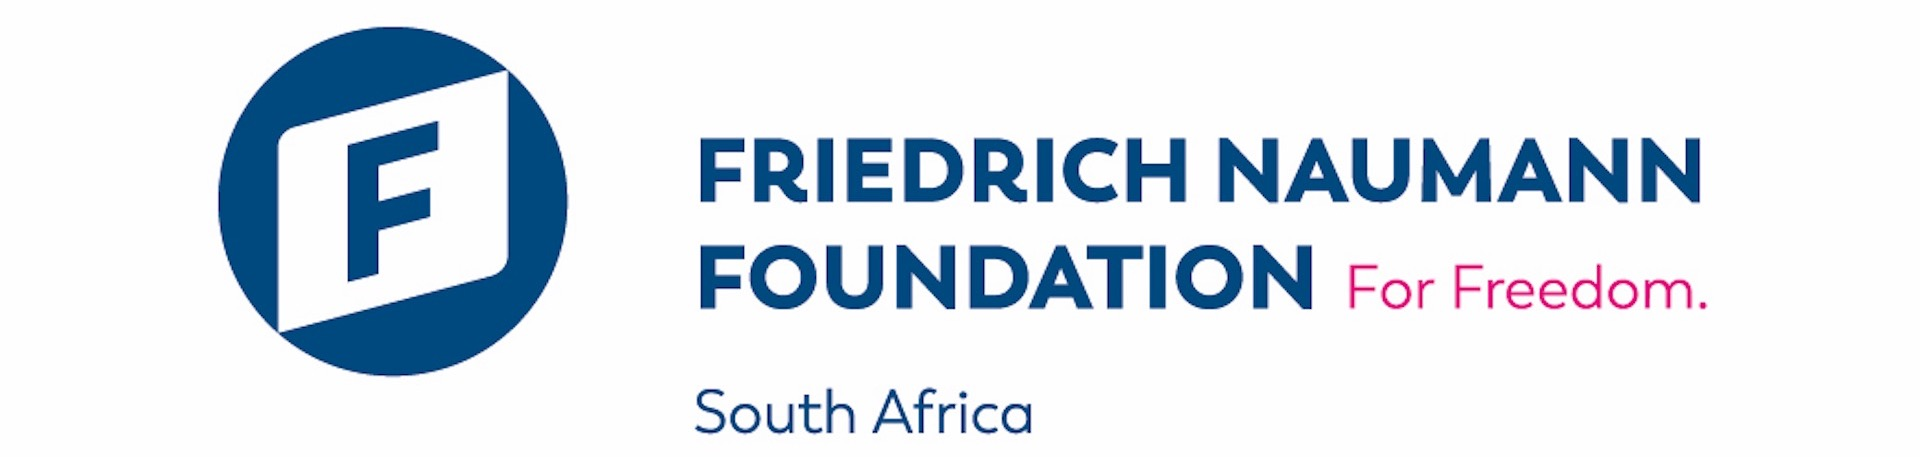 The Friedrich Naumann Foundation for Freedom, is a German foundation for liberal politics, related to the Free Democratic Party.